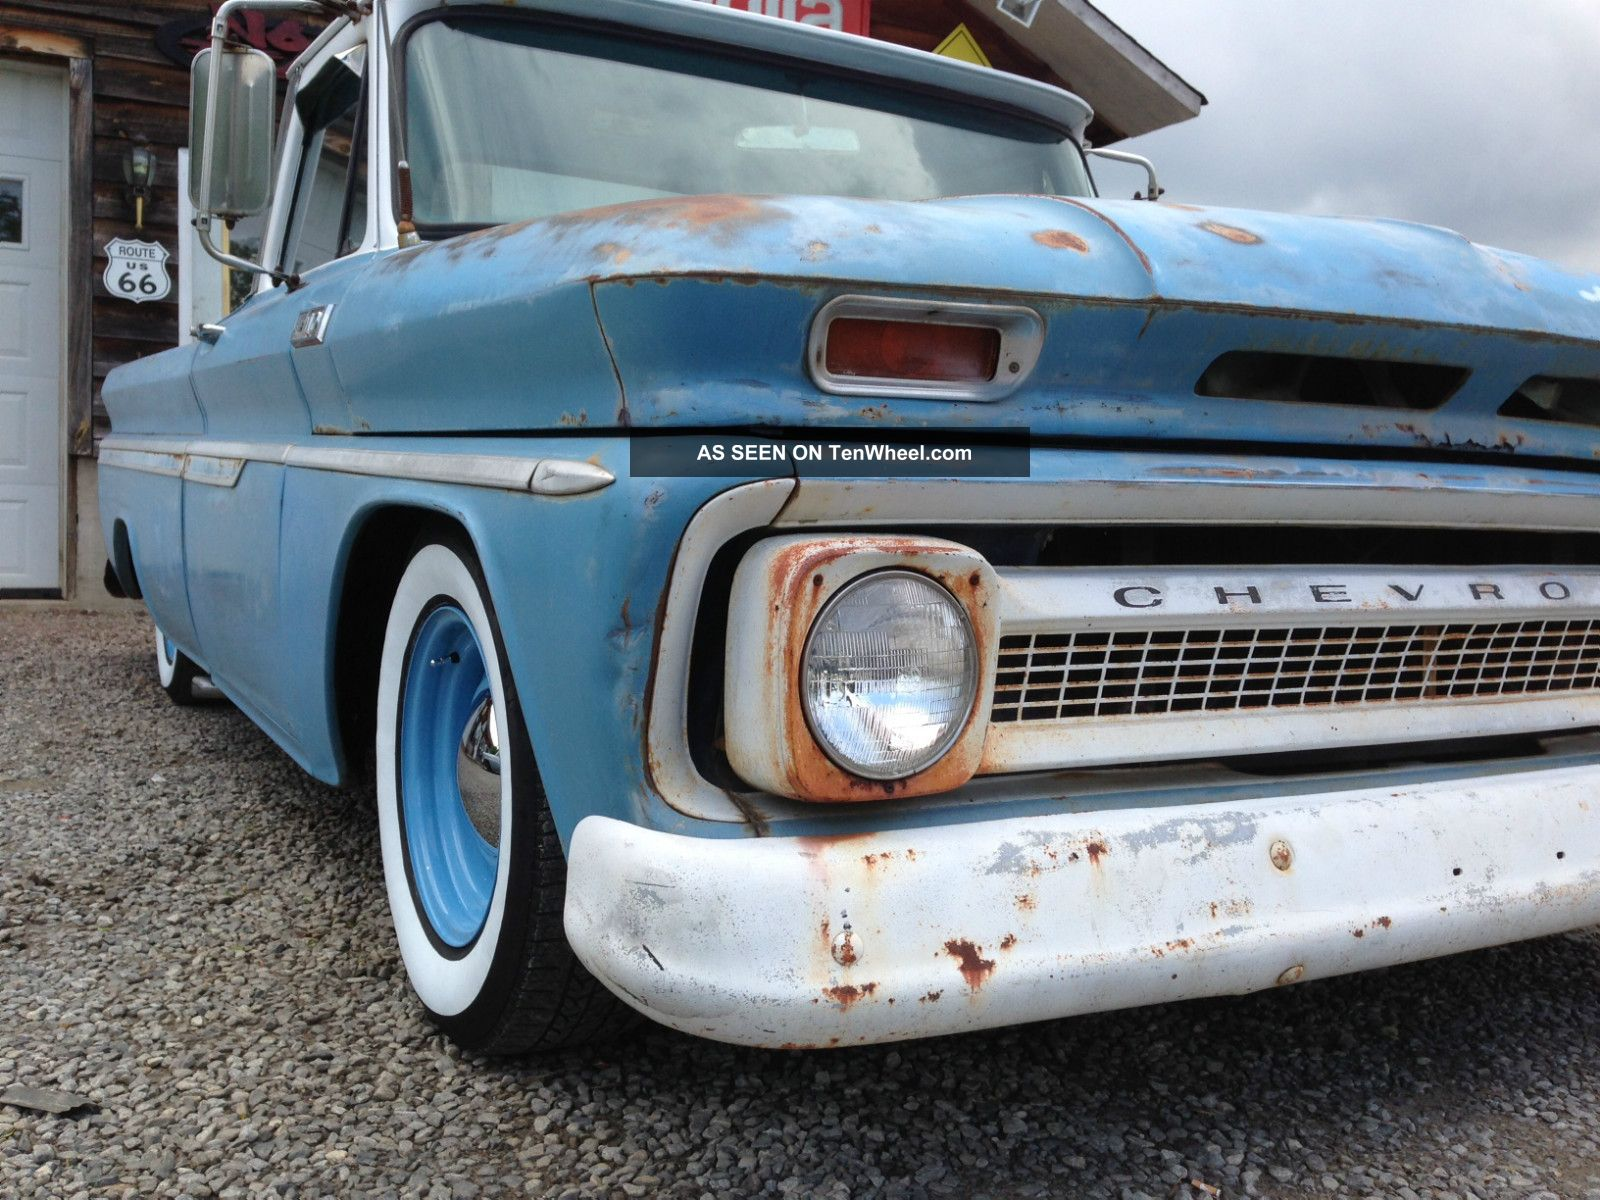 1969 Ford F100 For Sale Craigslist >> Cadillac 500 Engine Specs, Cadillac, Free Engine Image For User Manual Download